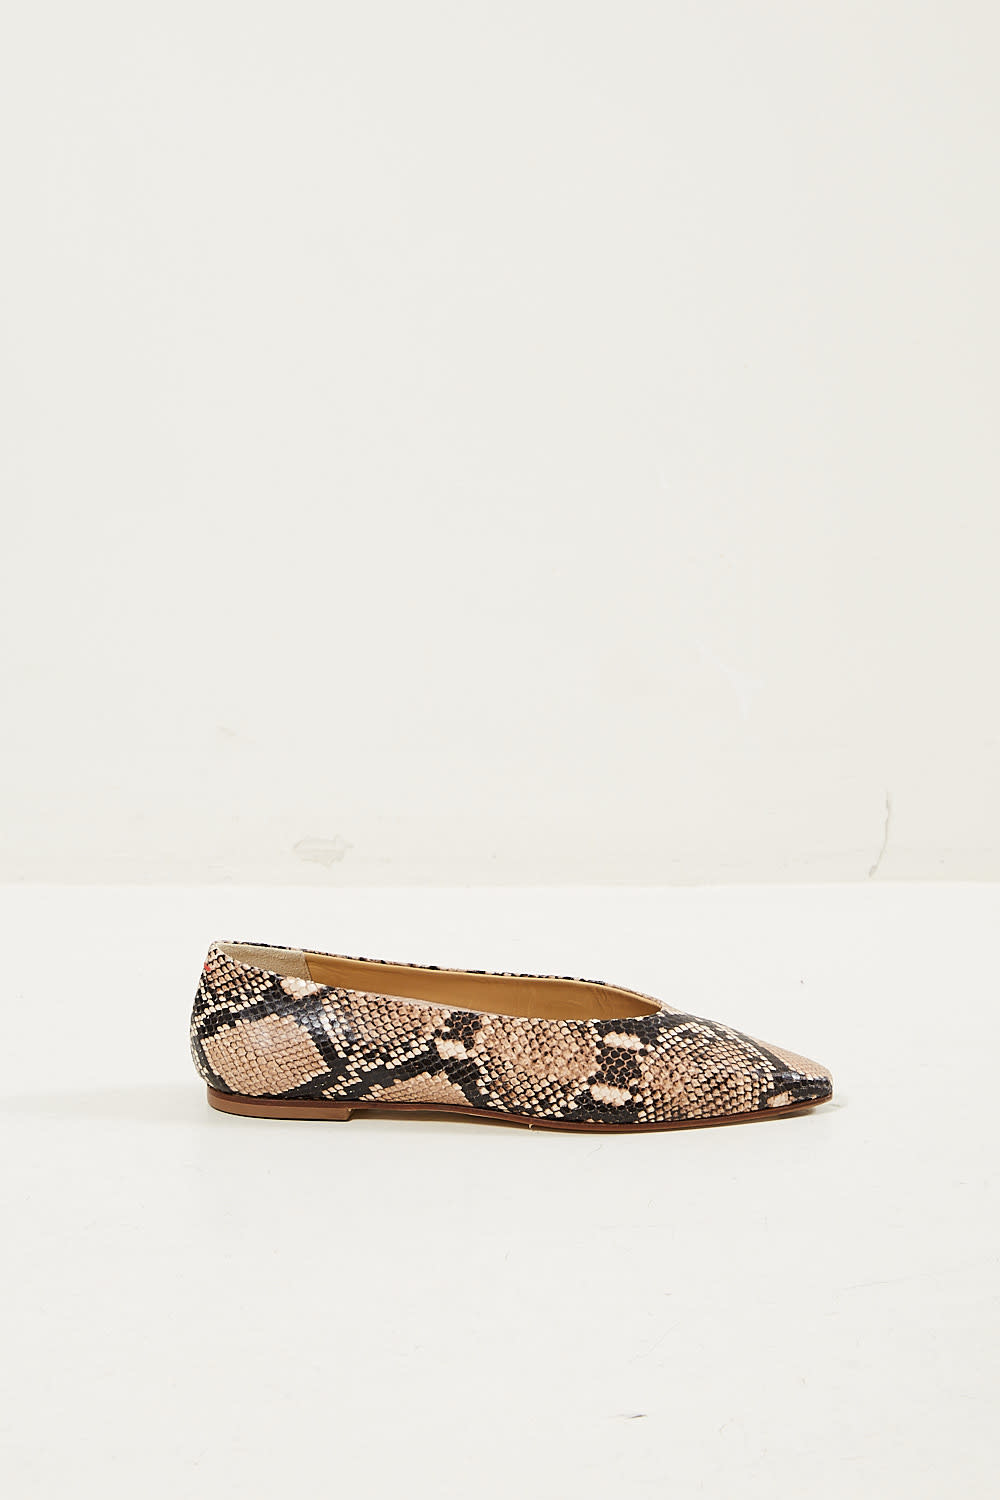 Aeyde - Betty snake print calf leather flats